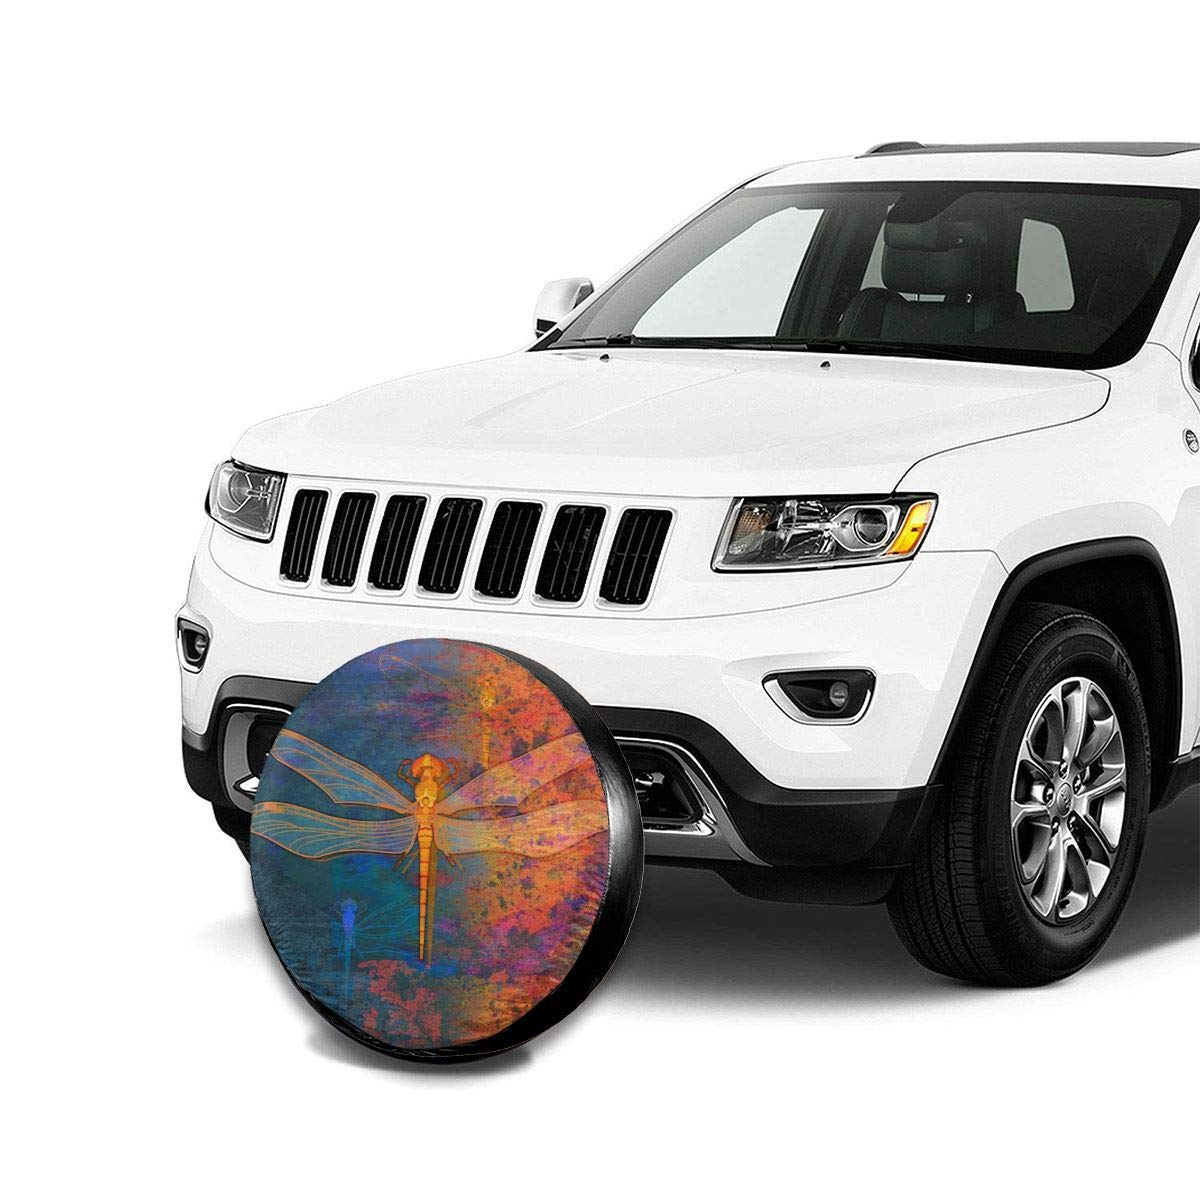 RV Becmd Flaming Dragonfly Universal Spare Wheel Tire Cover Fit for Truck Camper Van,Jeep,Trailer SUV Trailer Accessories15(Diameter 27-29